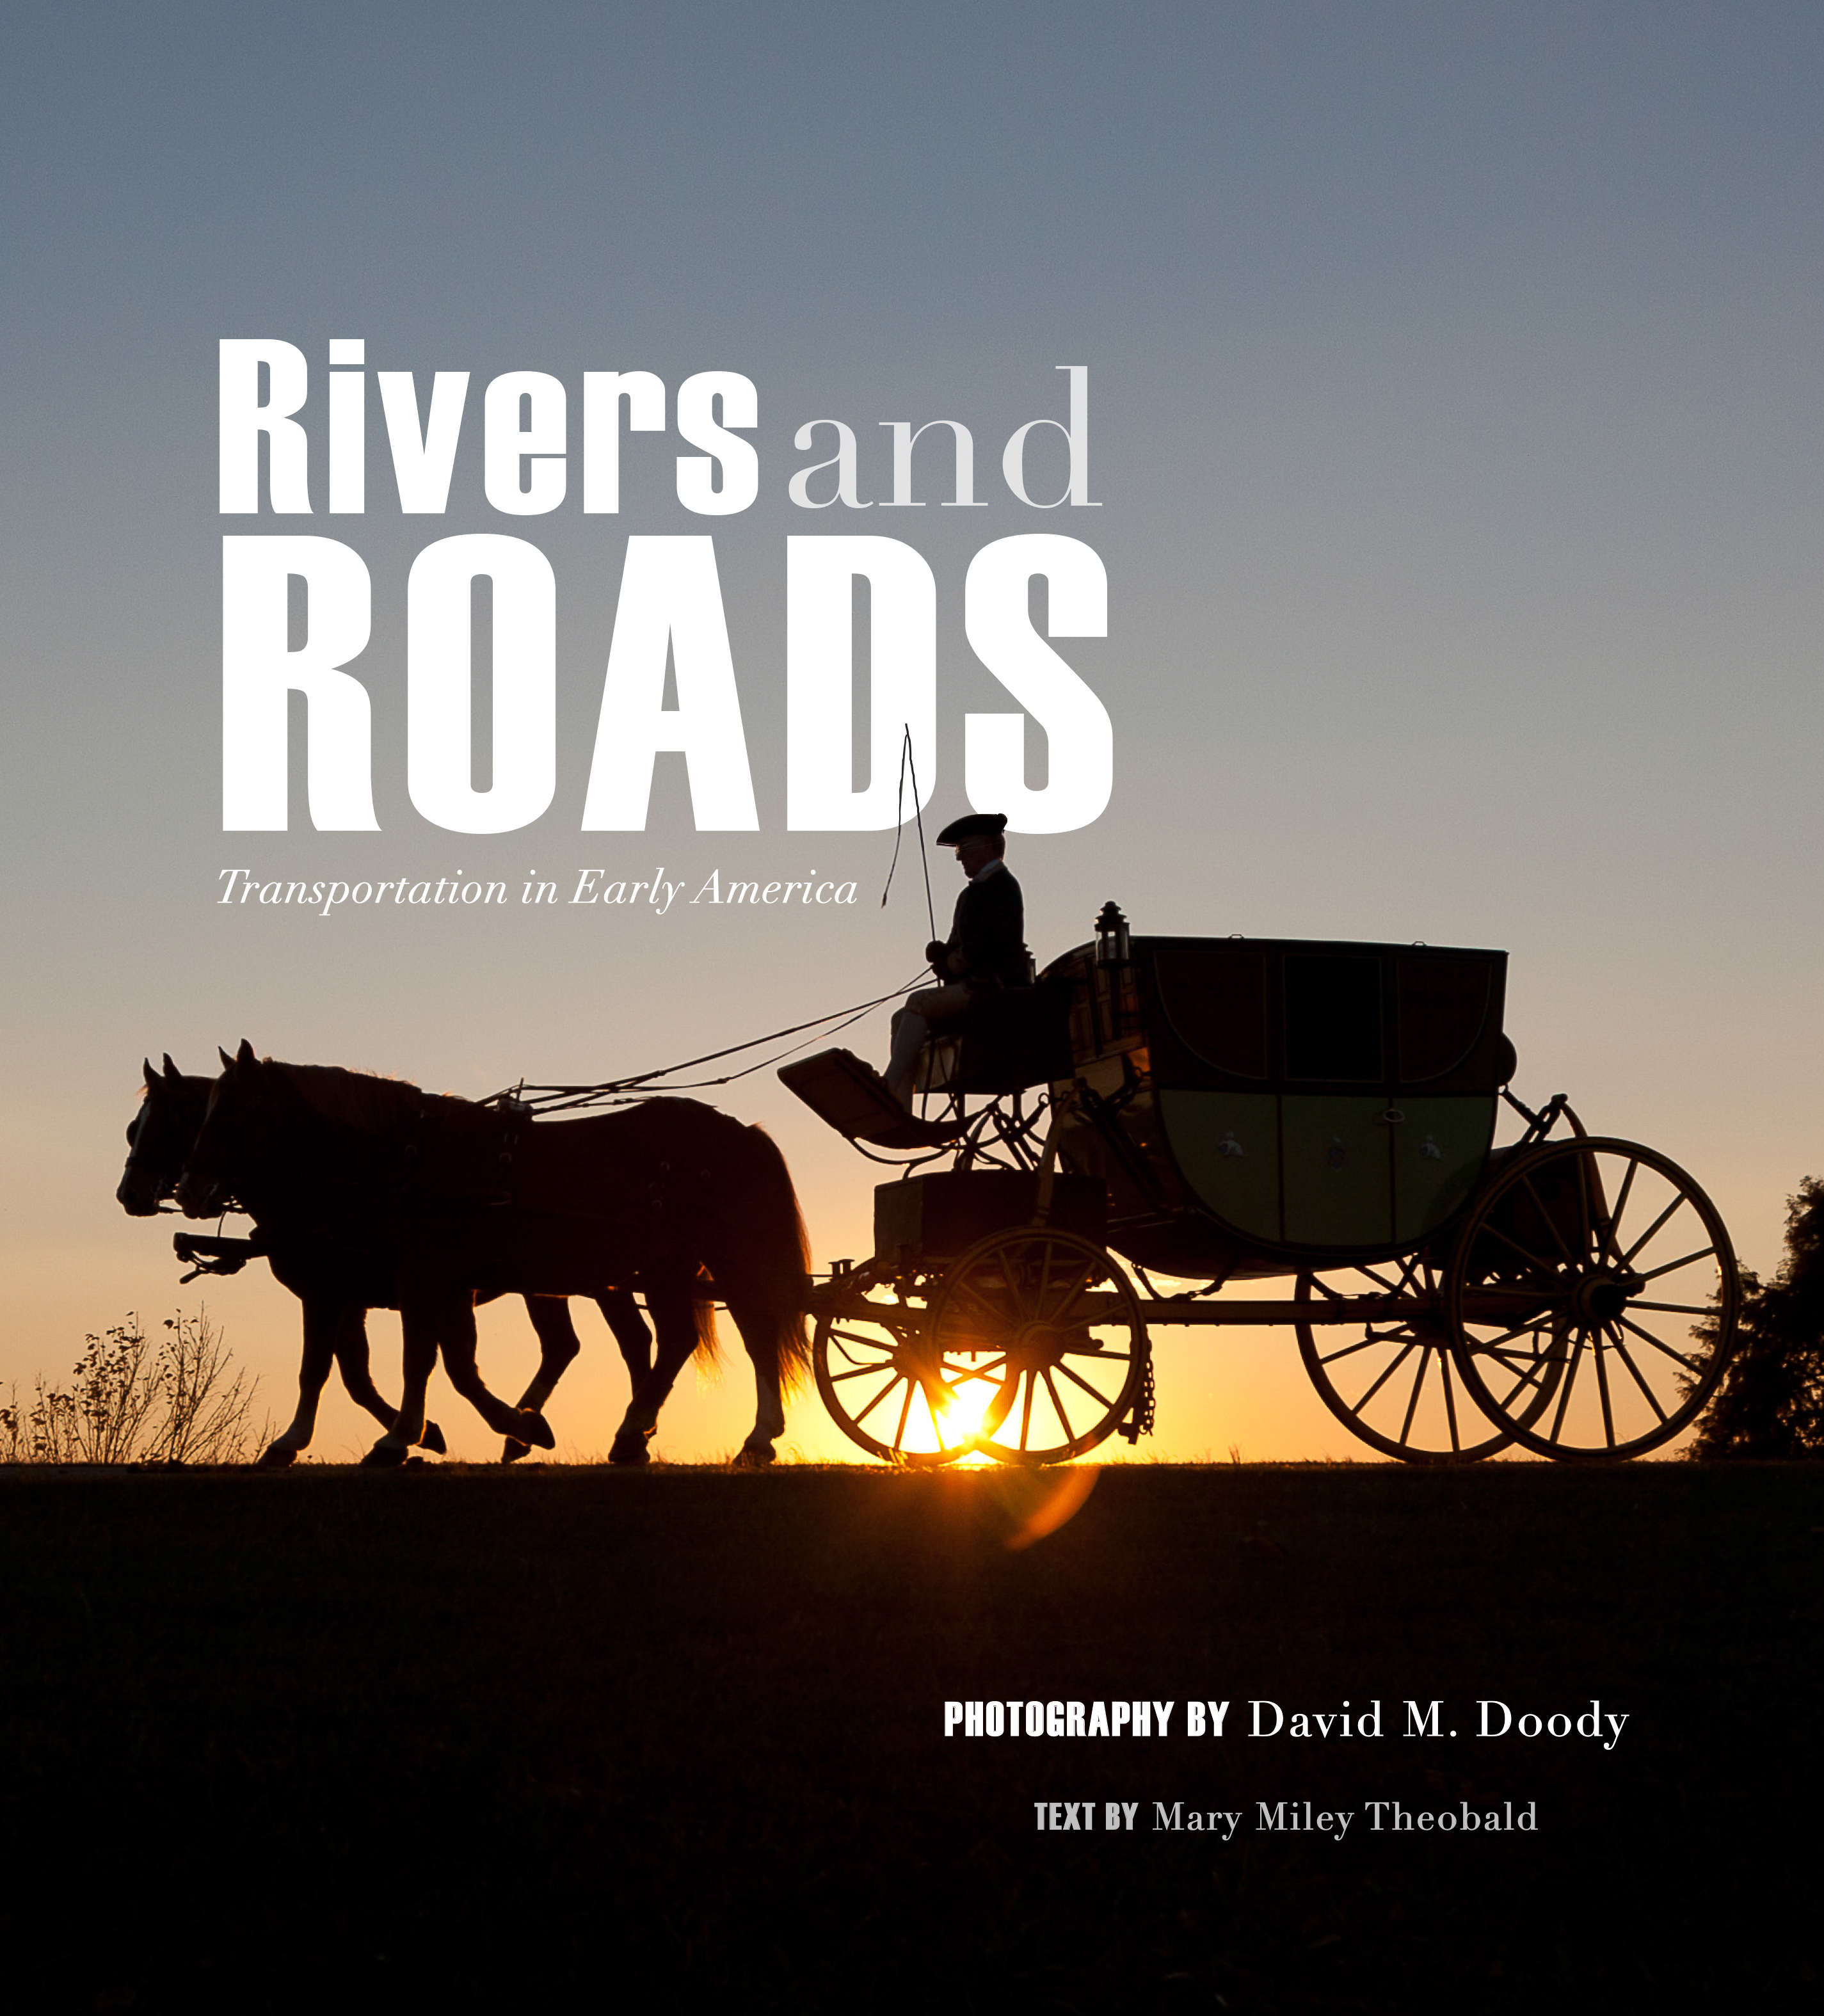 Rivers and Roads - Transportation in Early America